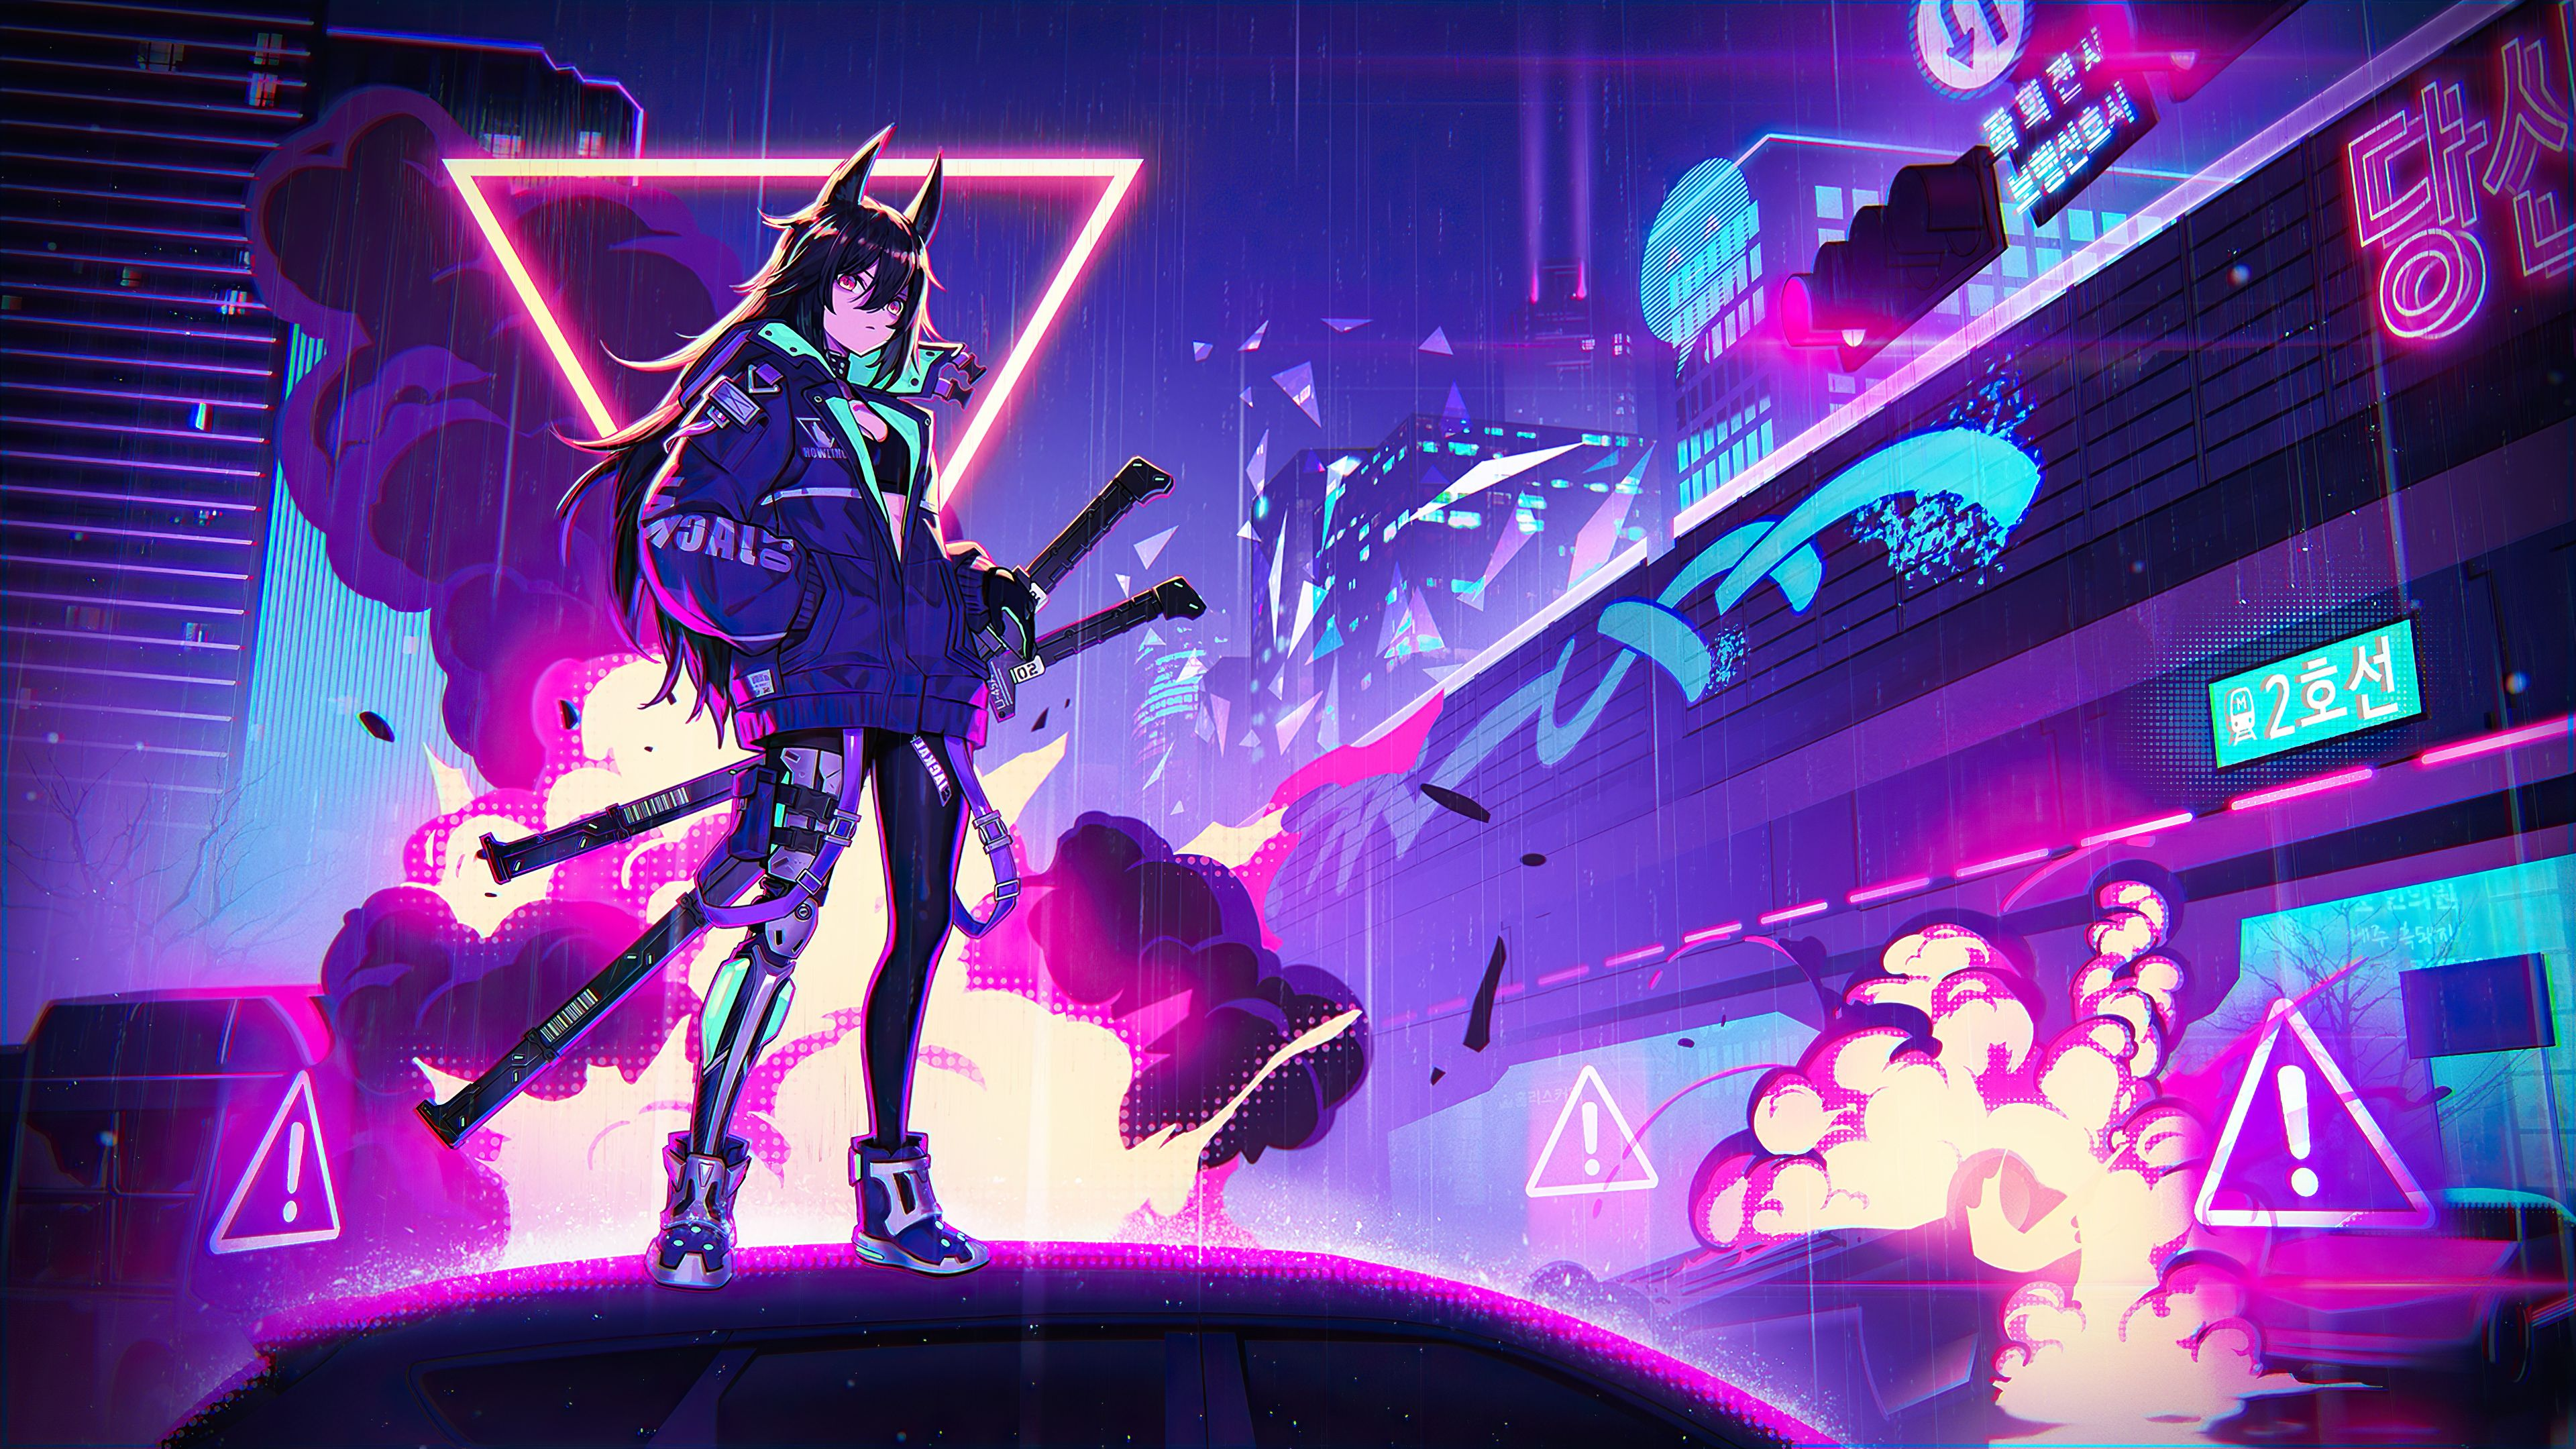 Neon Anime Wallpapers - Wallpaper Cave